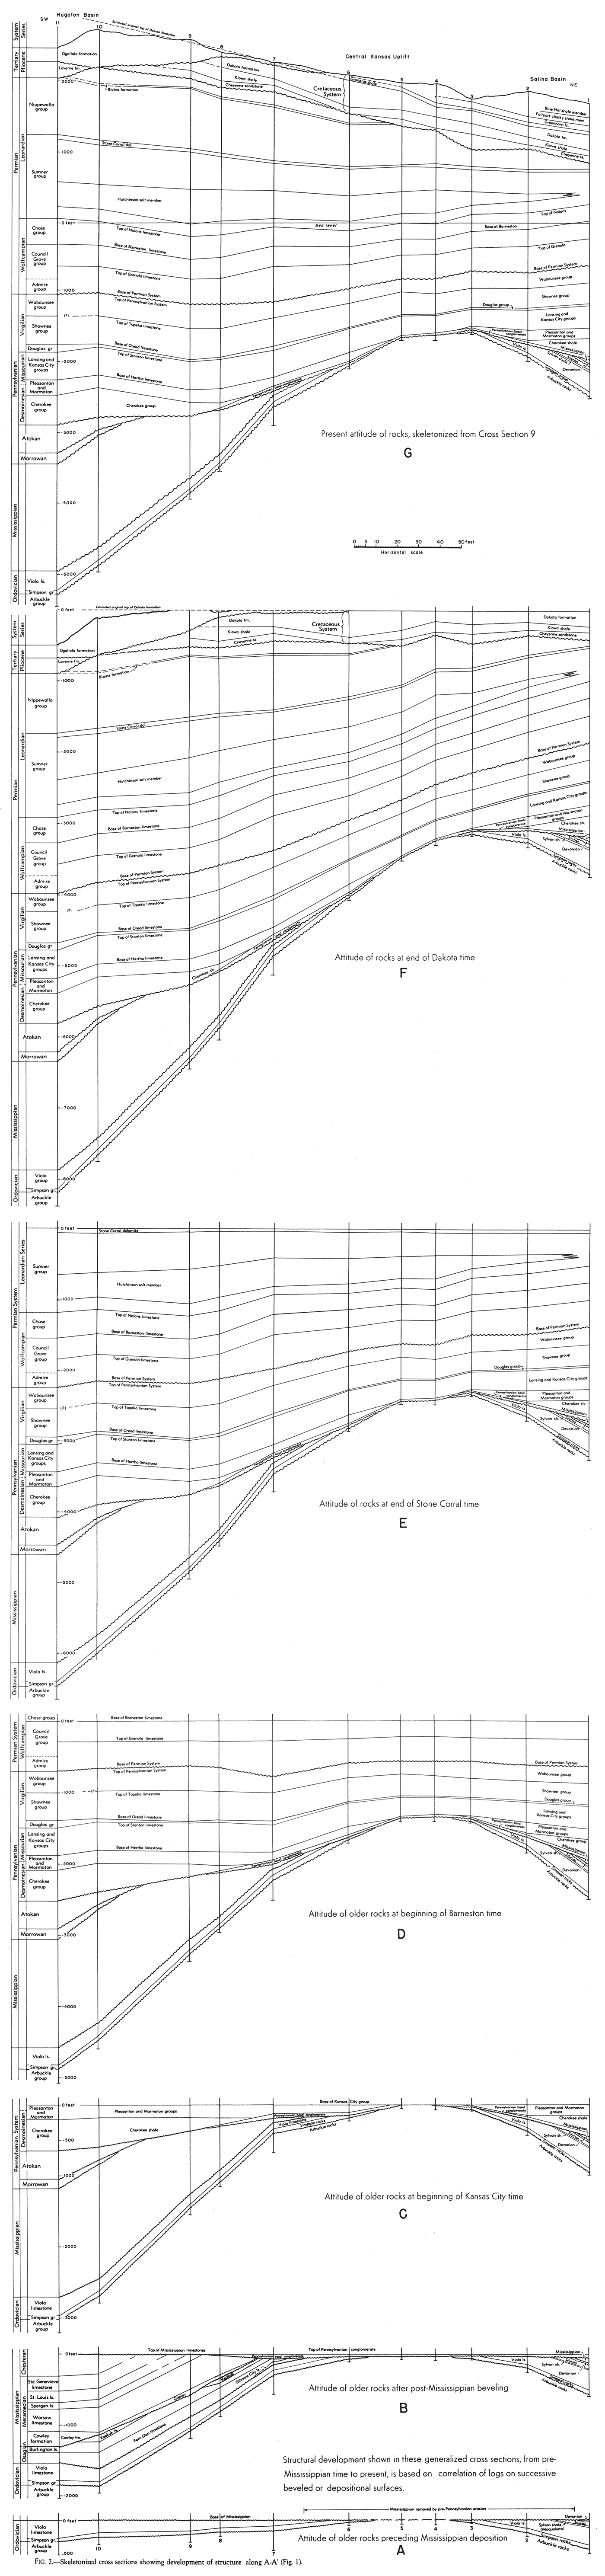 Kgs Ogi 9 Subsurface Geologic Cross Section From Meade